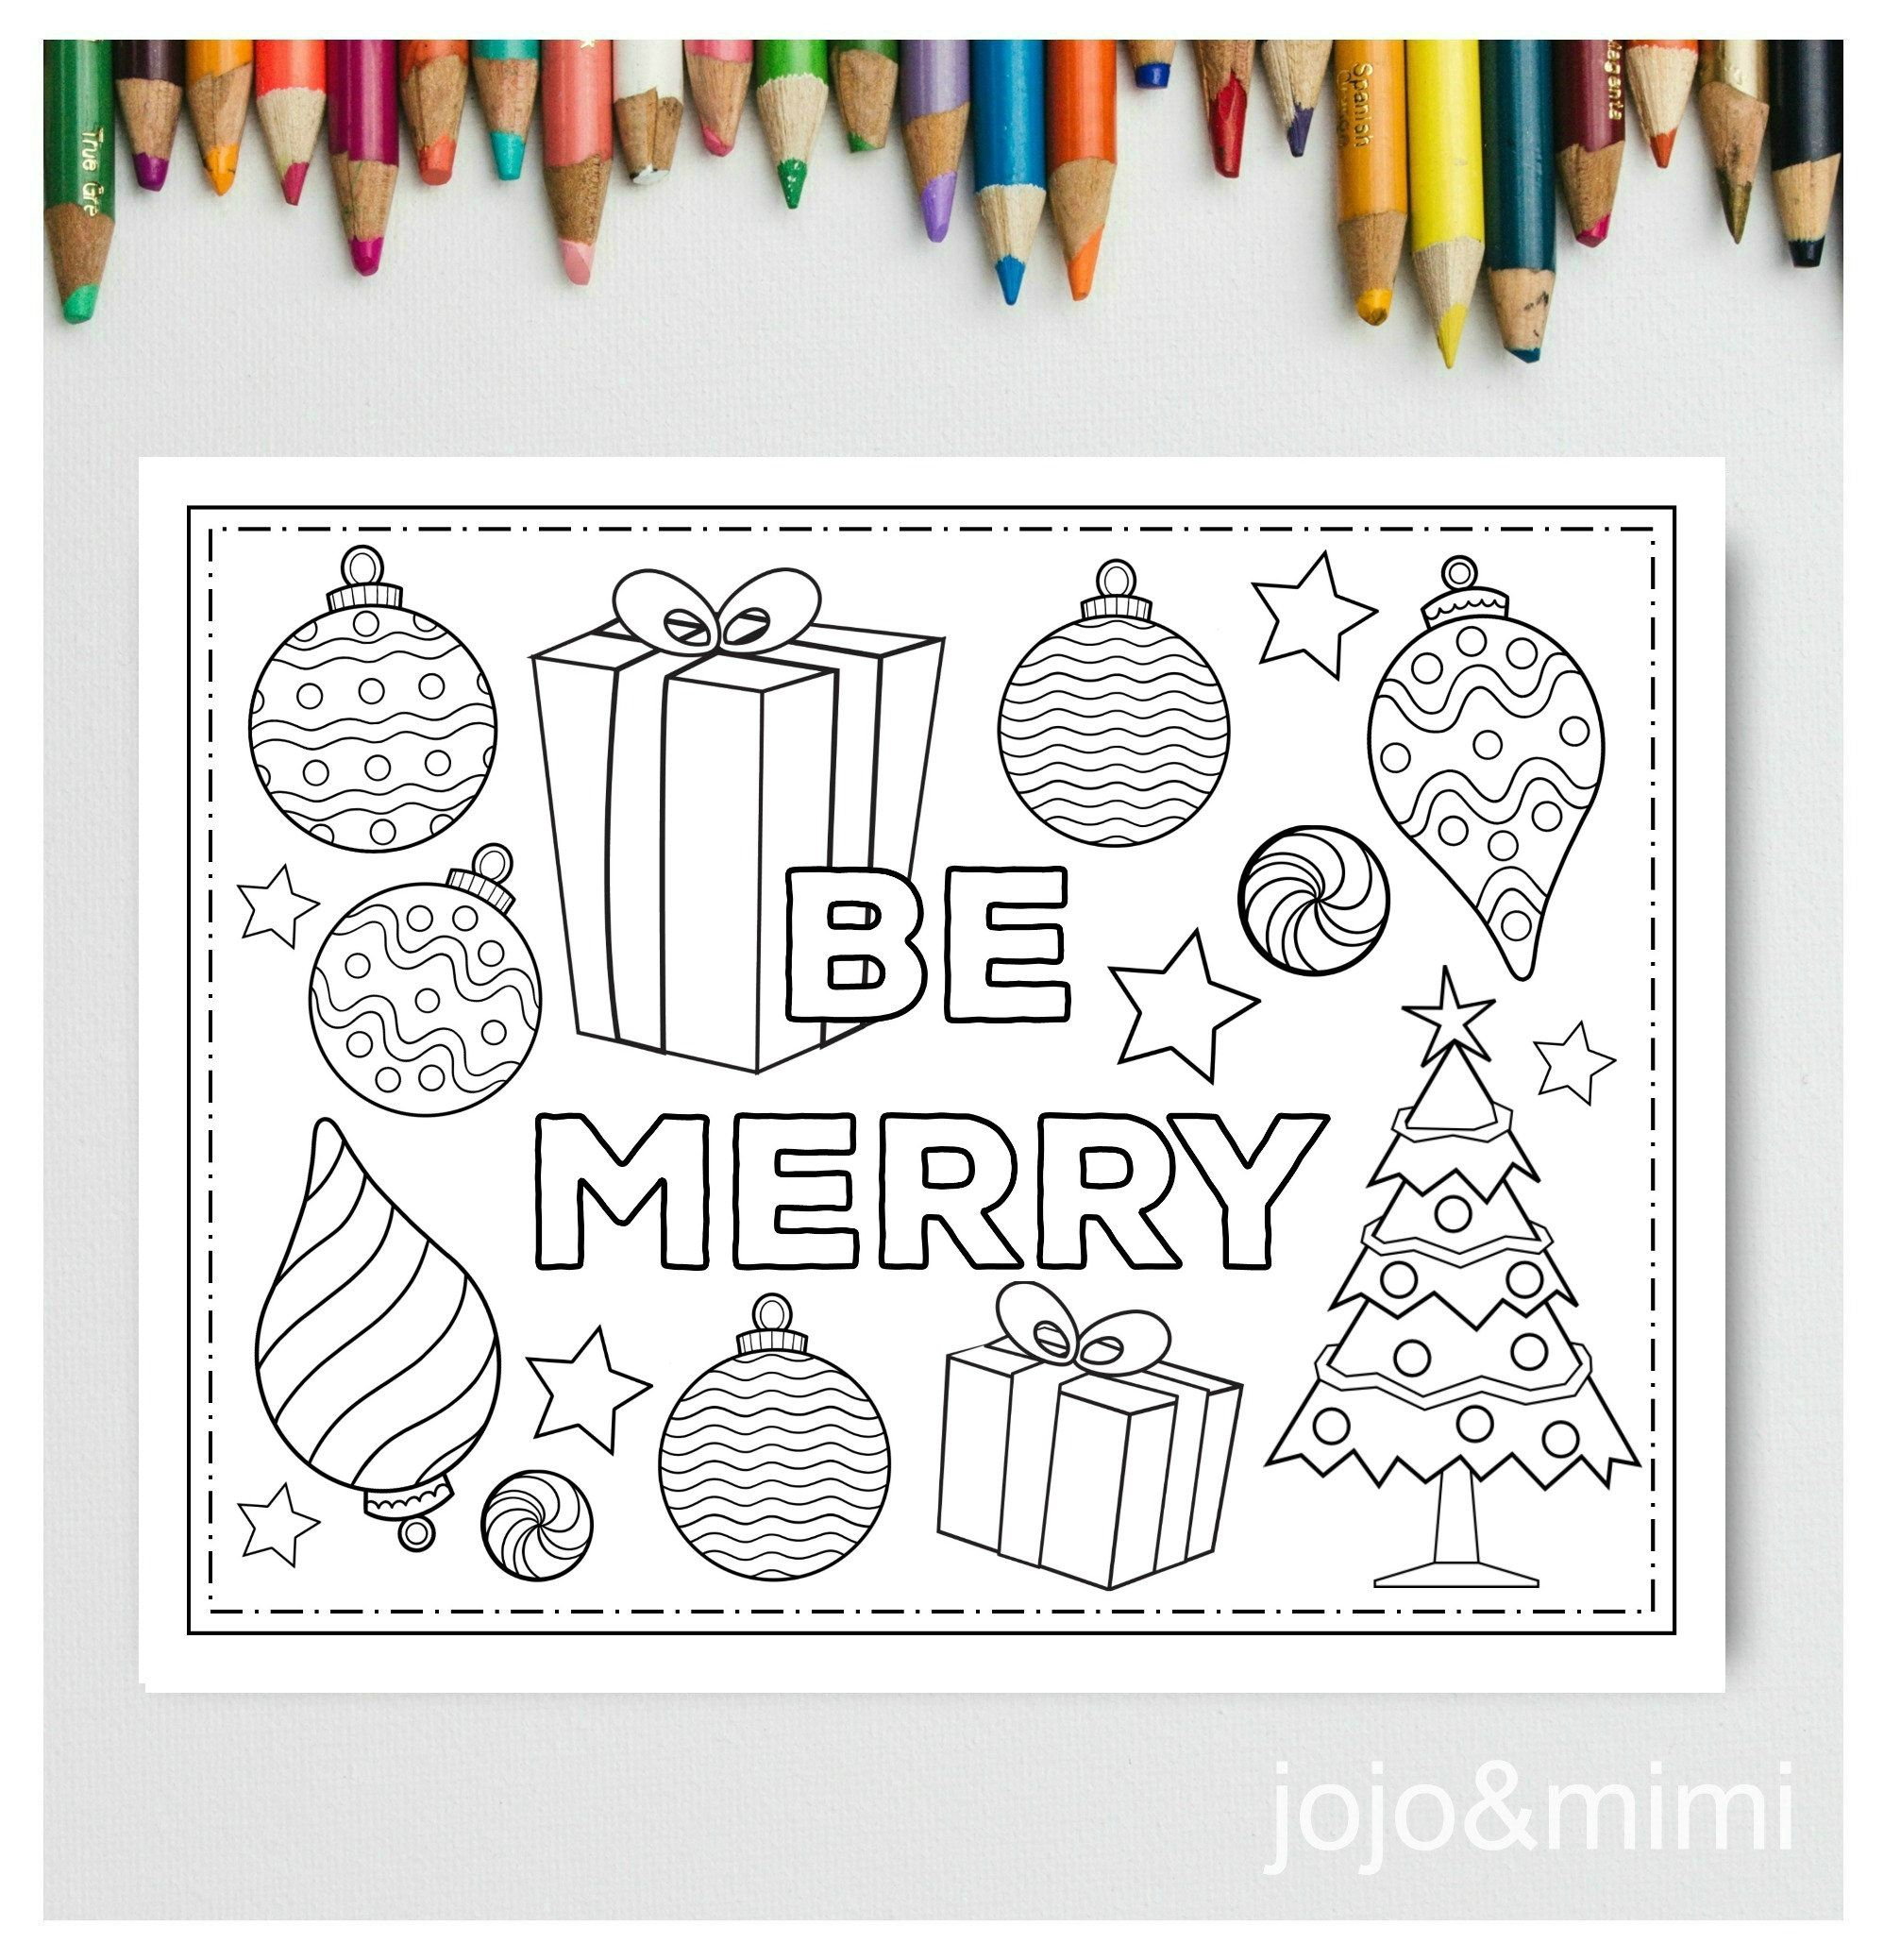 Christmas Printable Be Merry Placemat Activity Christmas Coloring Page Instant Download Holid Christmas Coloring Pages Fall Coloring Pages Christmas Printables